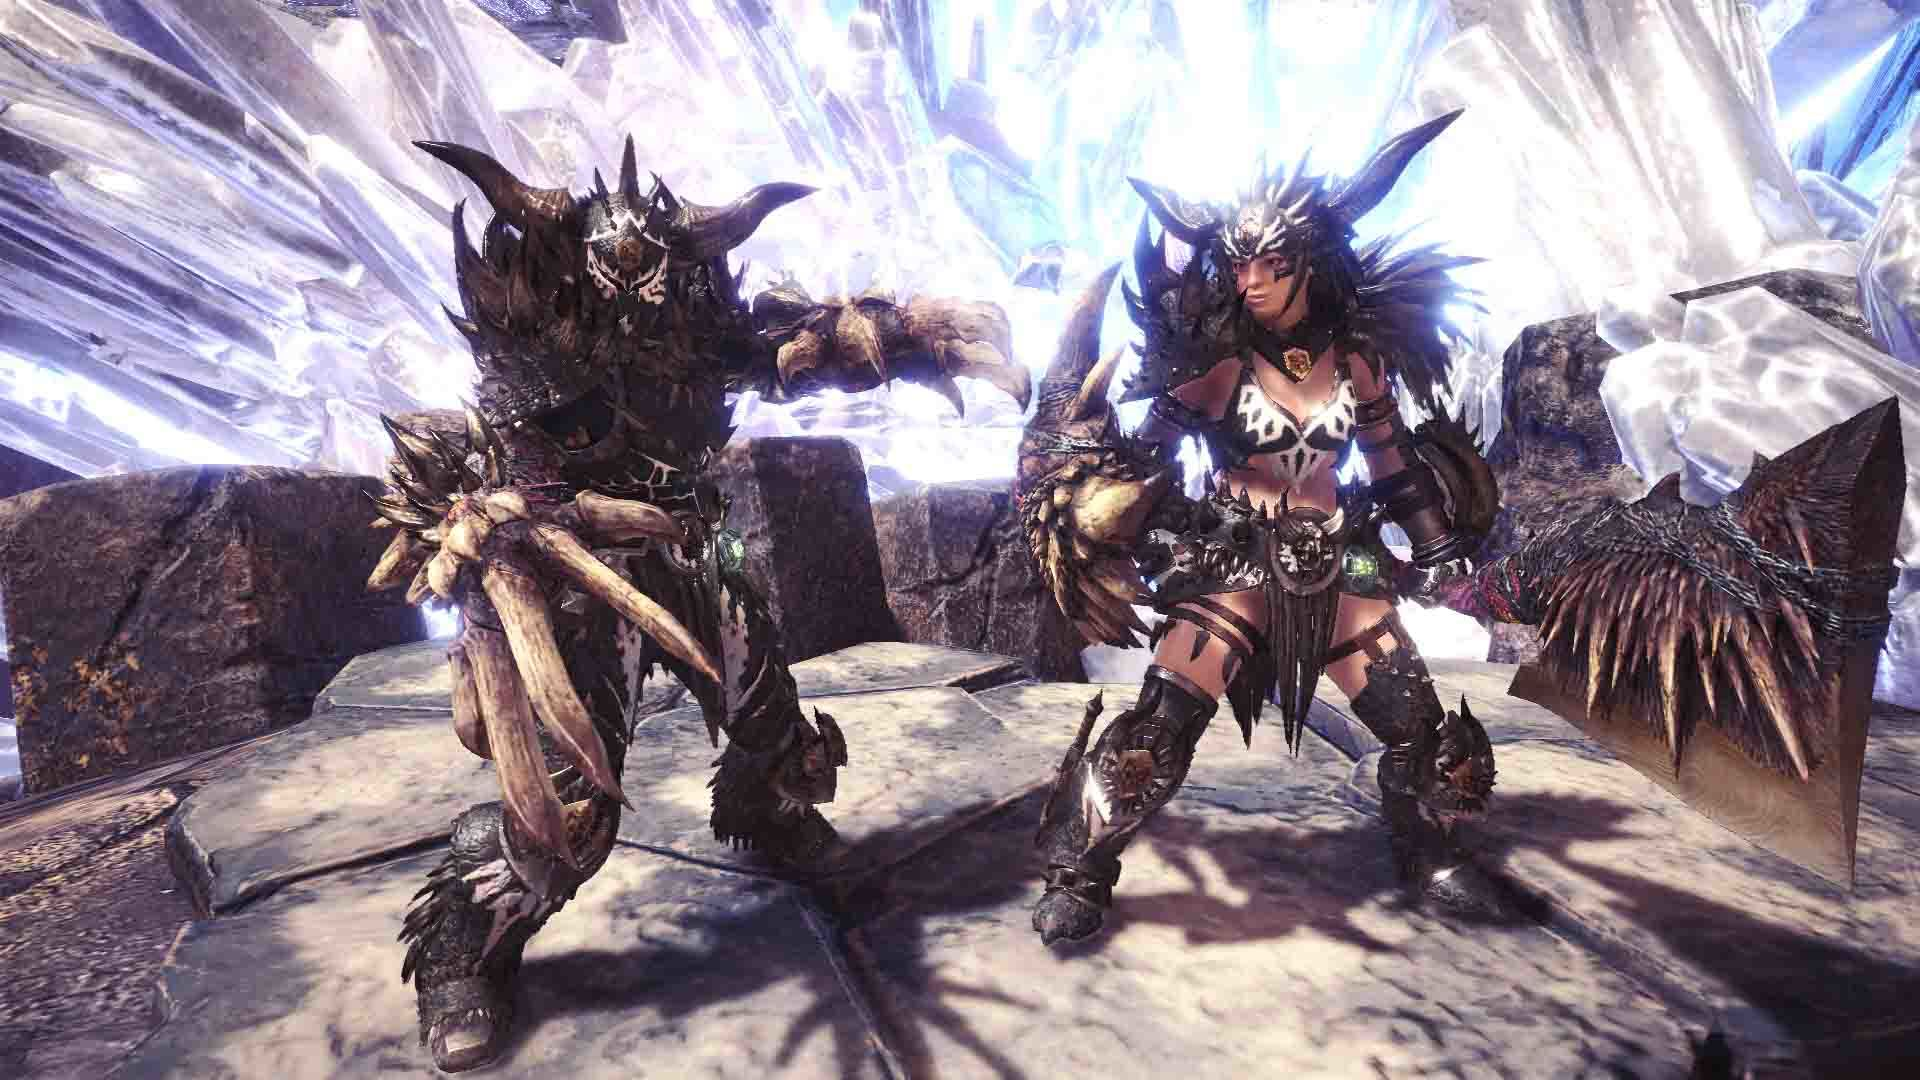 MONSTER HUNTER: WORLD :: An Arch-tempered Nergigante bursts onto Steam!